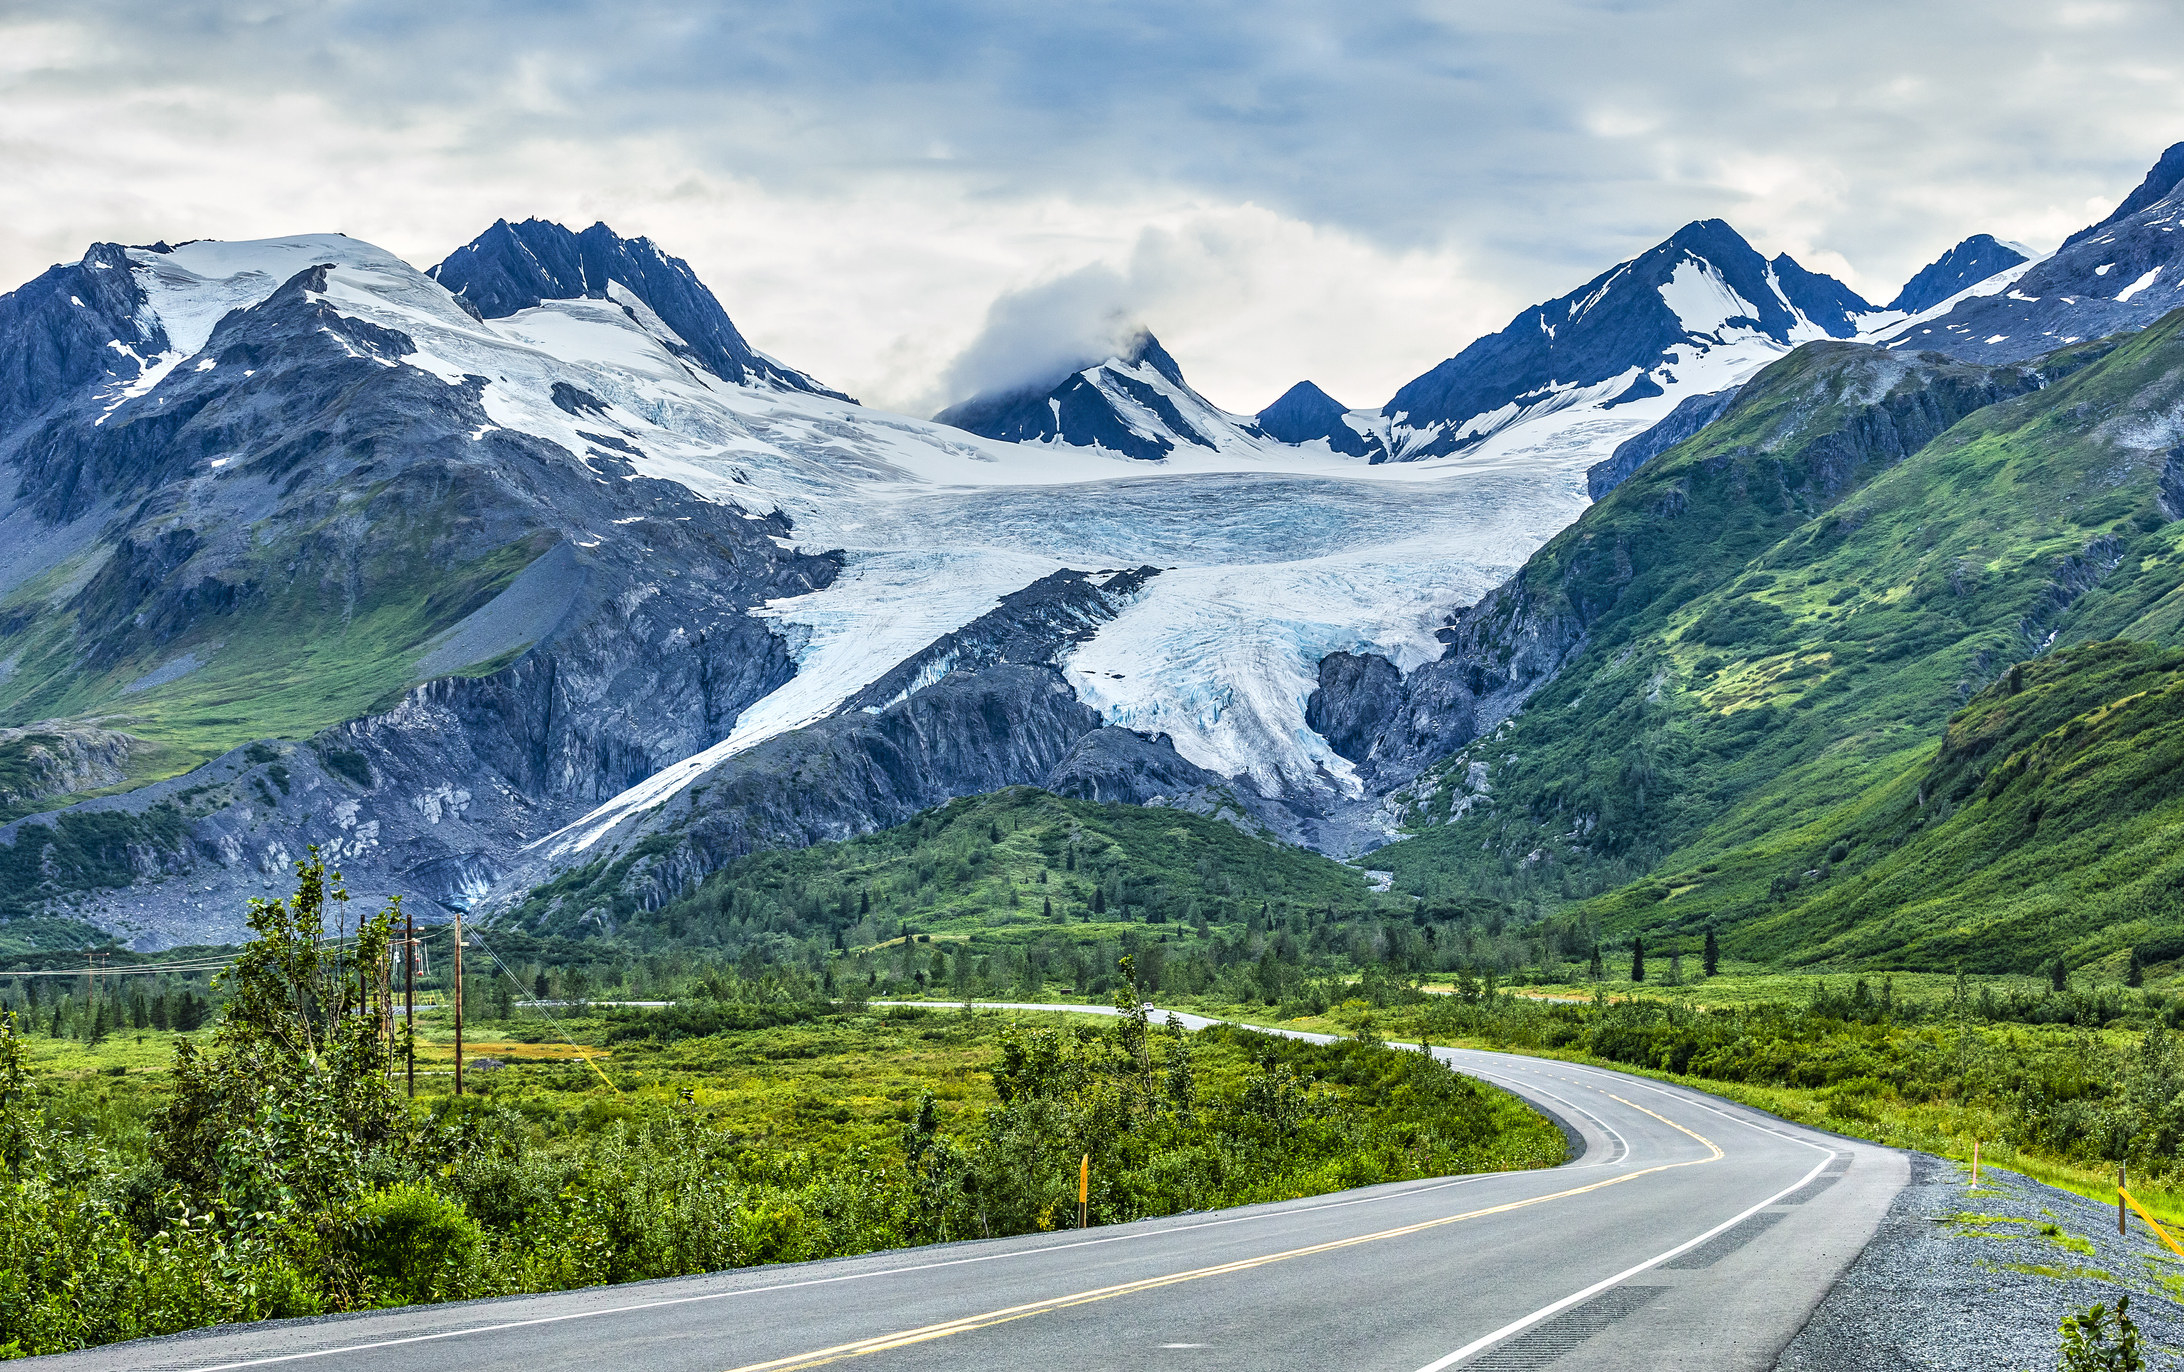 windy Richardson Highway in Alaska. In the background is Worthington Glacier.